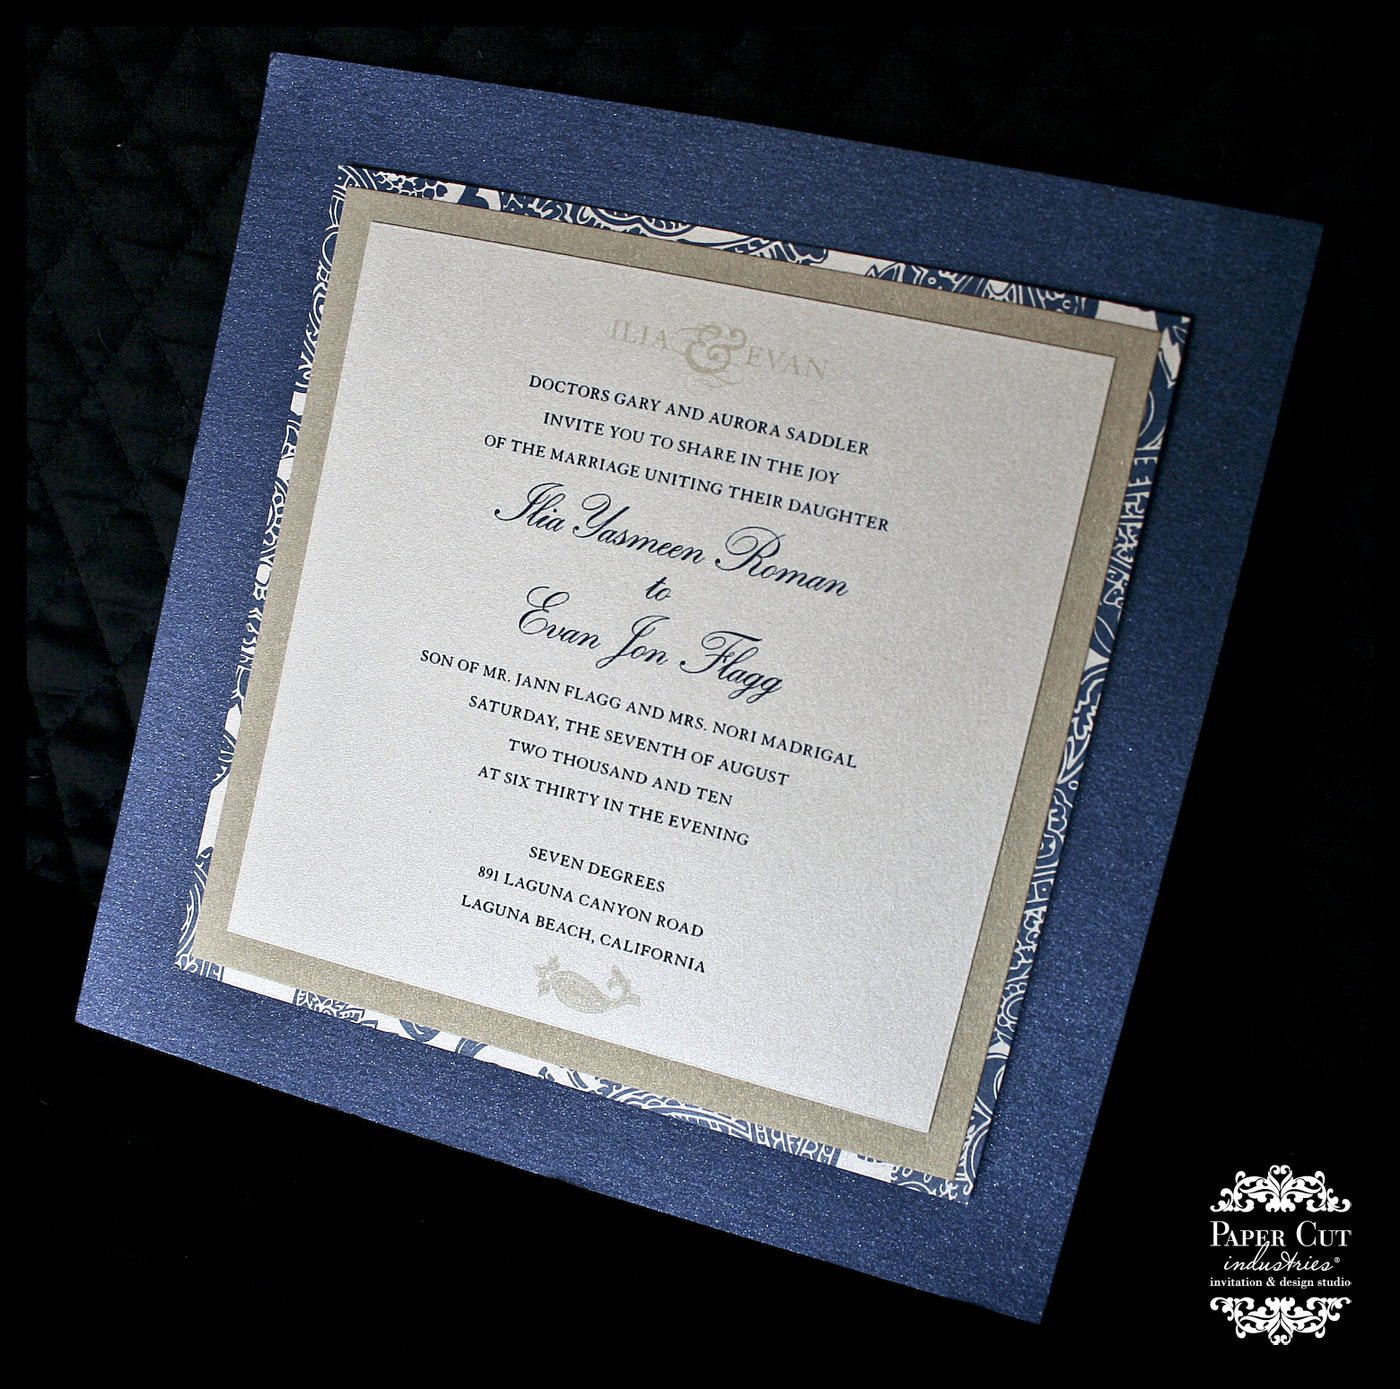 Wedding invitations event invitations by monica garrett at wedding invitation square wedding invitation layered with metallic papers vellum overlay wrap and thermography printed in two colors navy blue gold stopboris Images